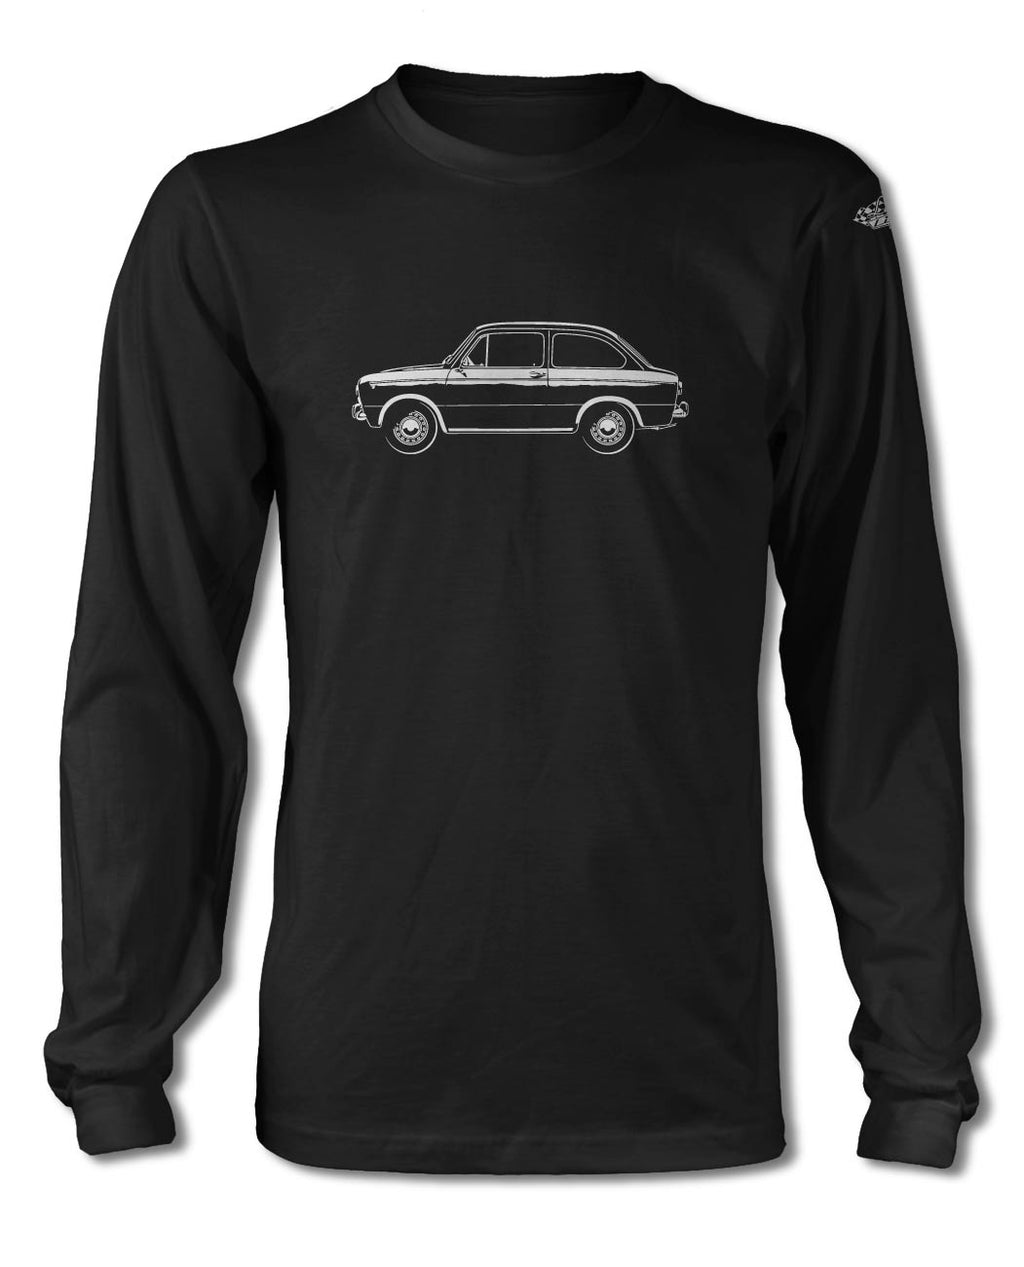 Fiat 850 Coupe Special T-Shirt - Long Sleeves - Side View